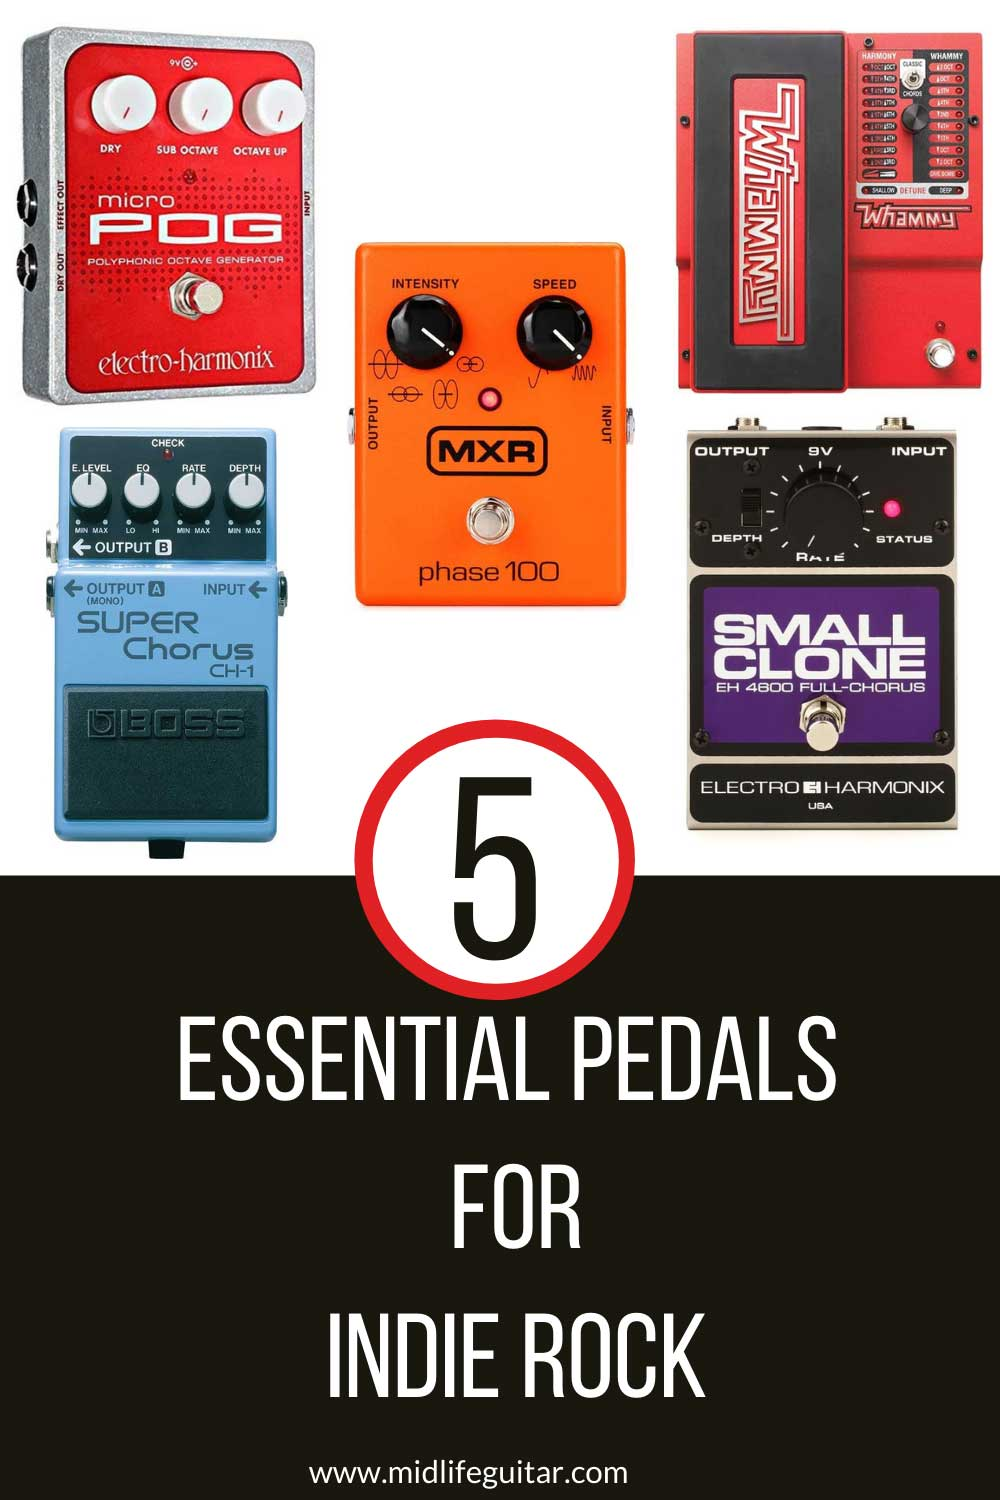 Essential Pedals For Indie Rock